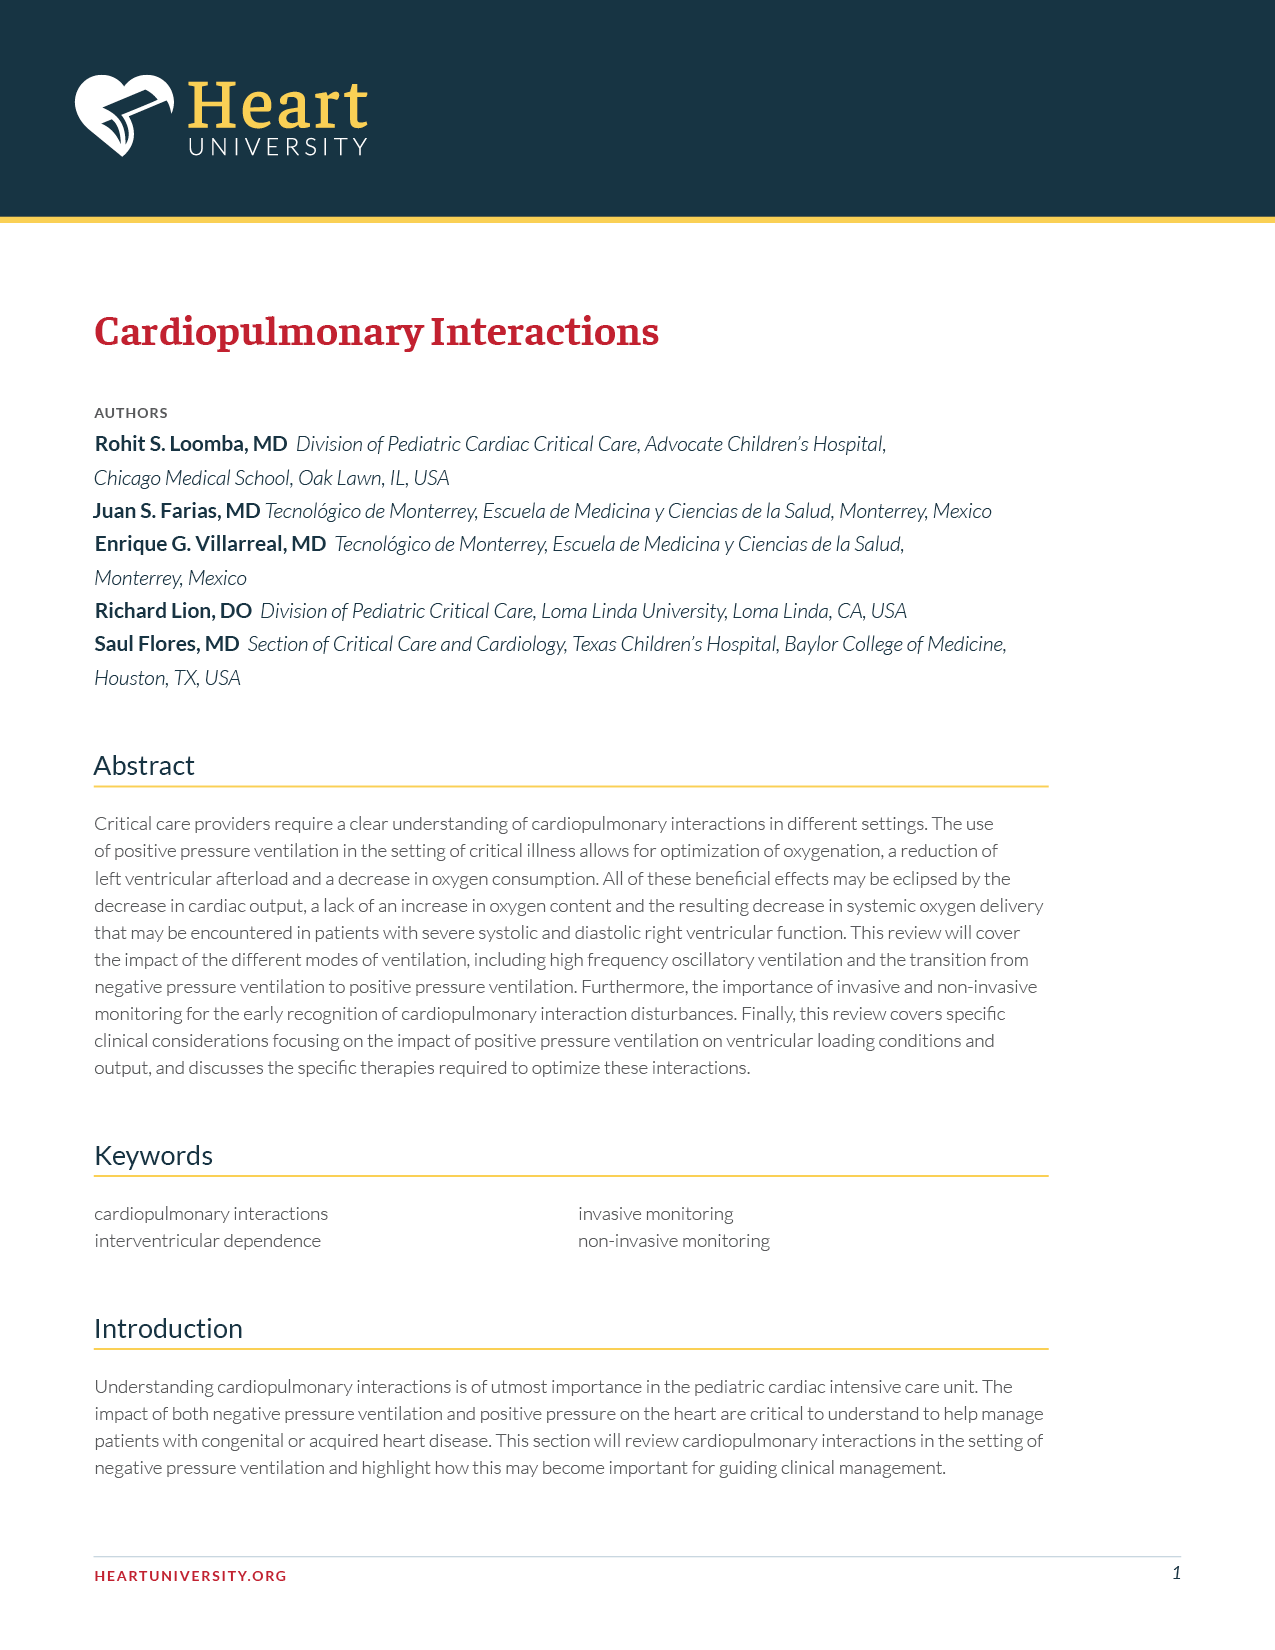 Cardiac ICU - Cardiopulmonary Interactions